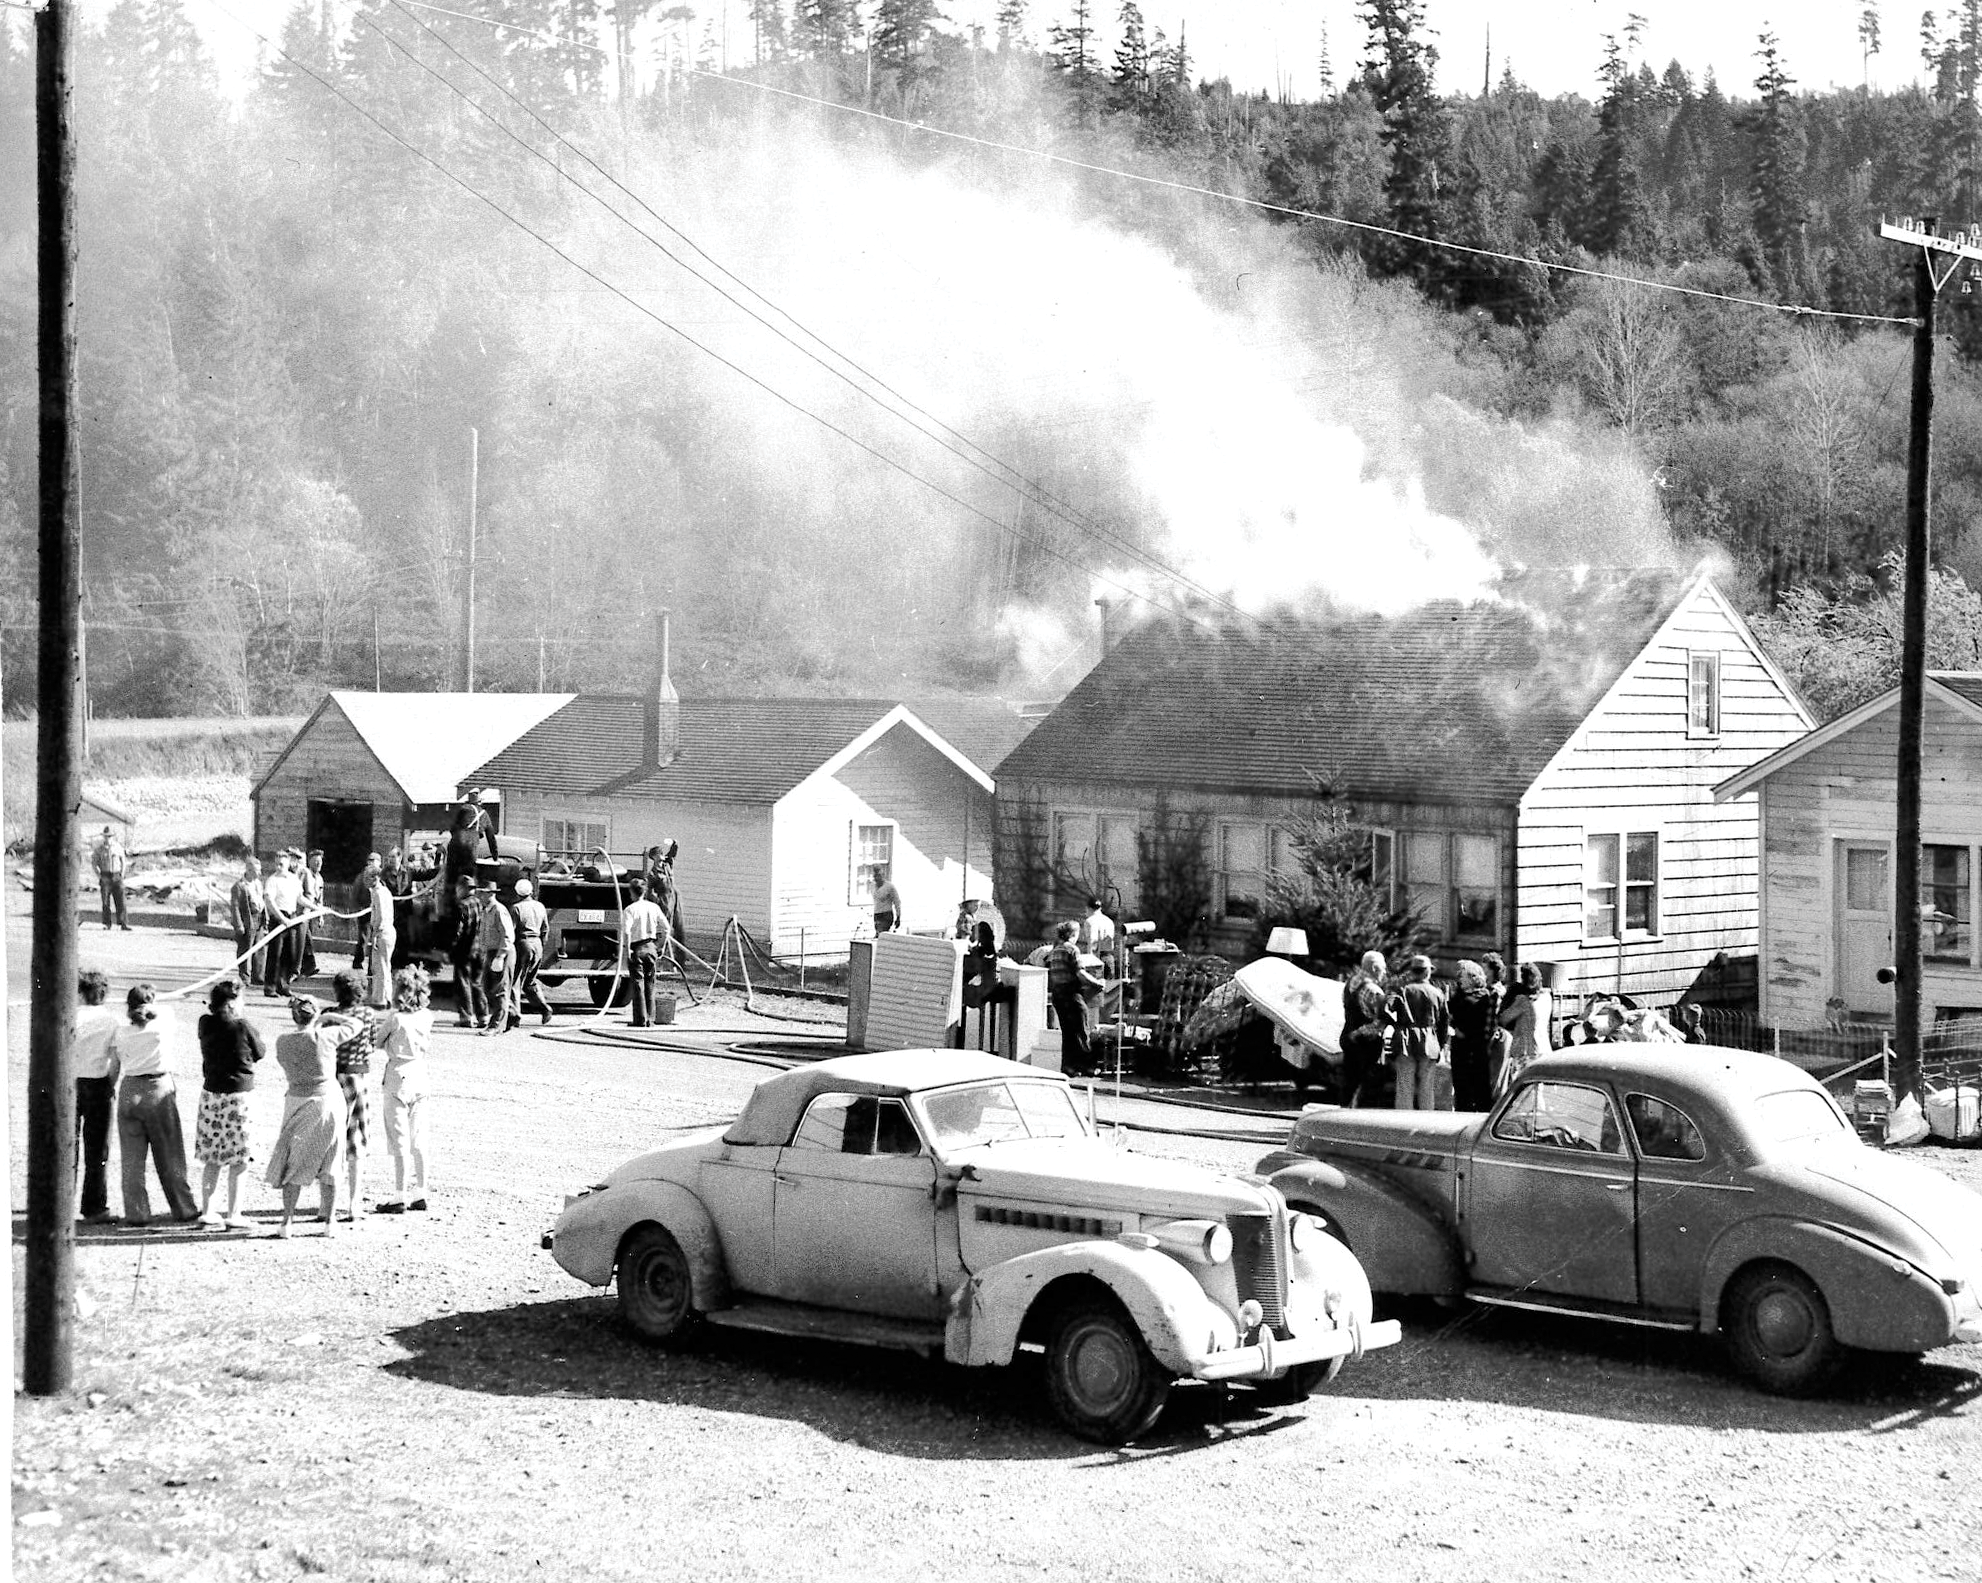 Our Impact - Since 1947, people in the community have stepped up and taken the call to serve as volunteer firefighters, and since then have never stopped!